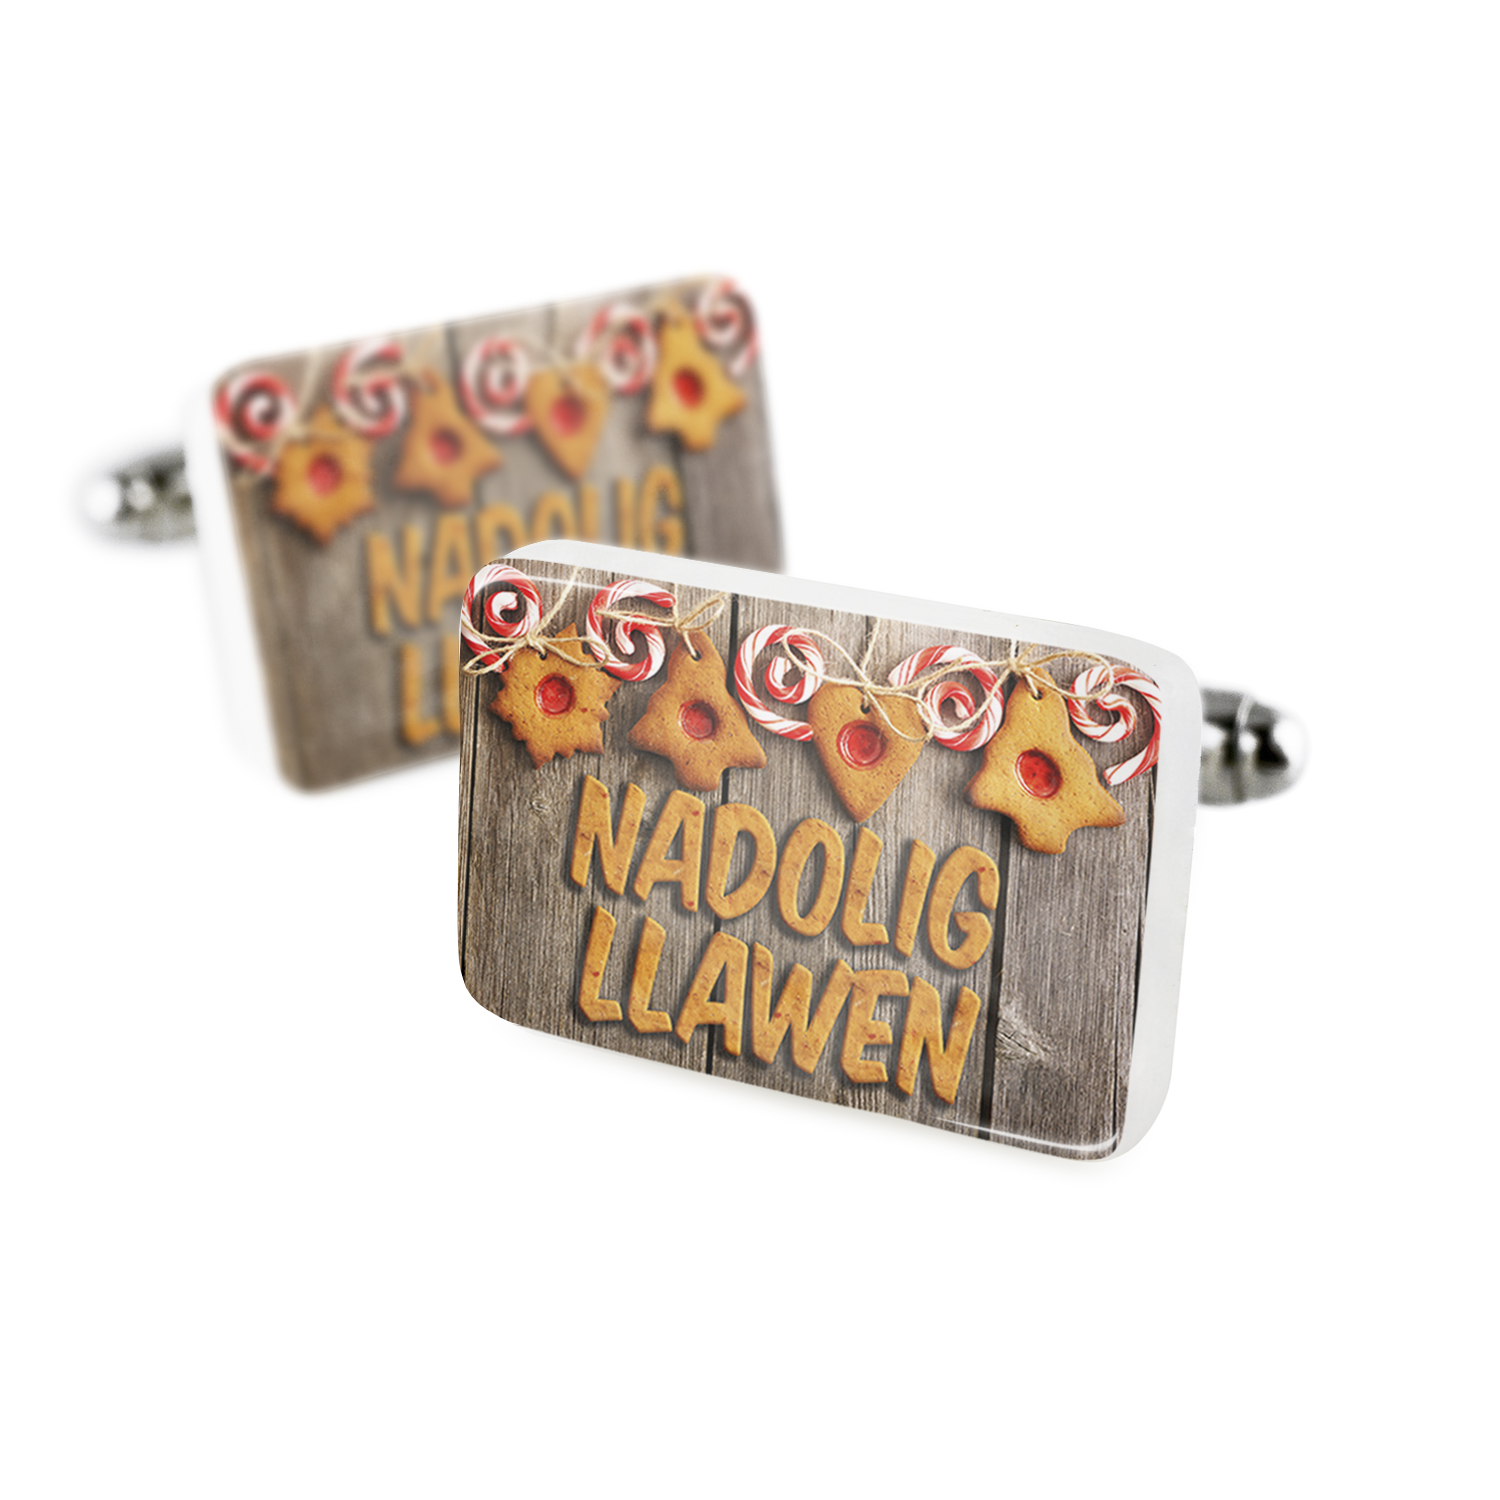 Cufflinks Merry Christmas in Welsh from Wales, United KingdomPorcelain Ceramic NEONBLOND